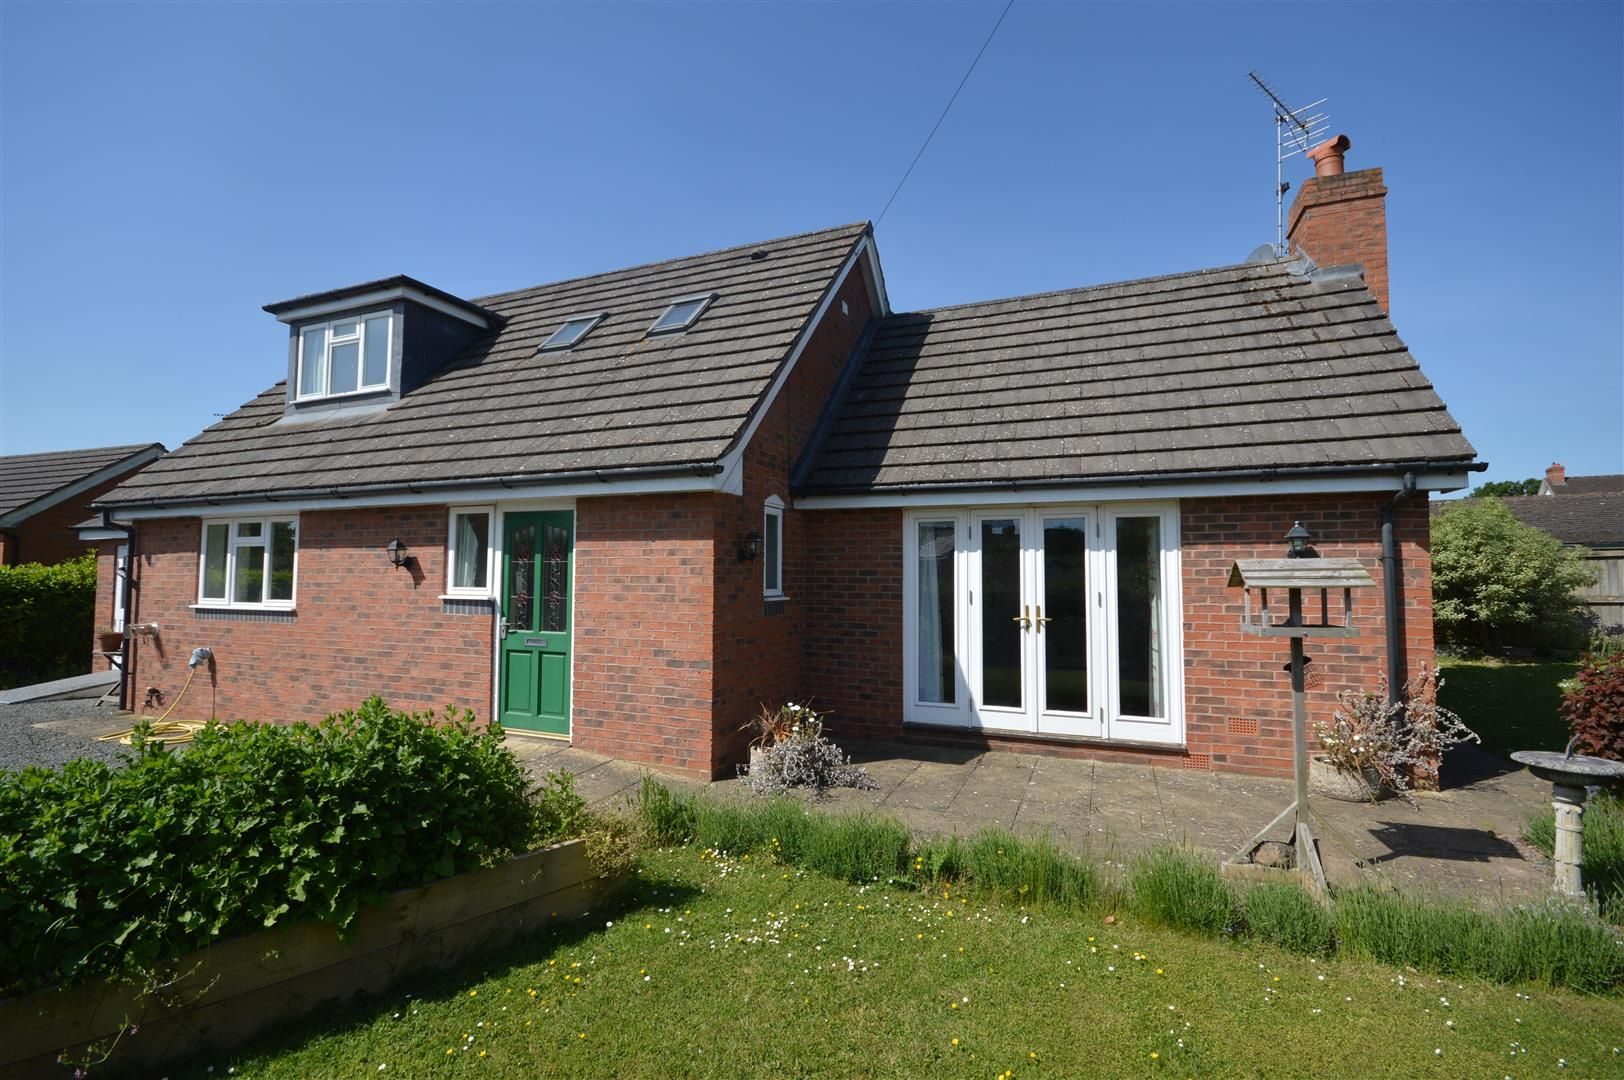 3 bed detached-bungalow for sale in Almeley 16